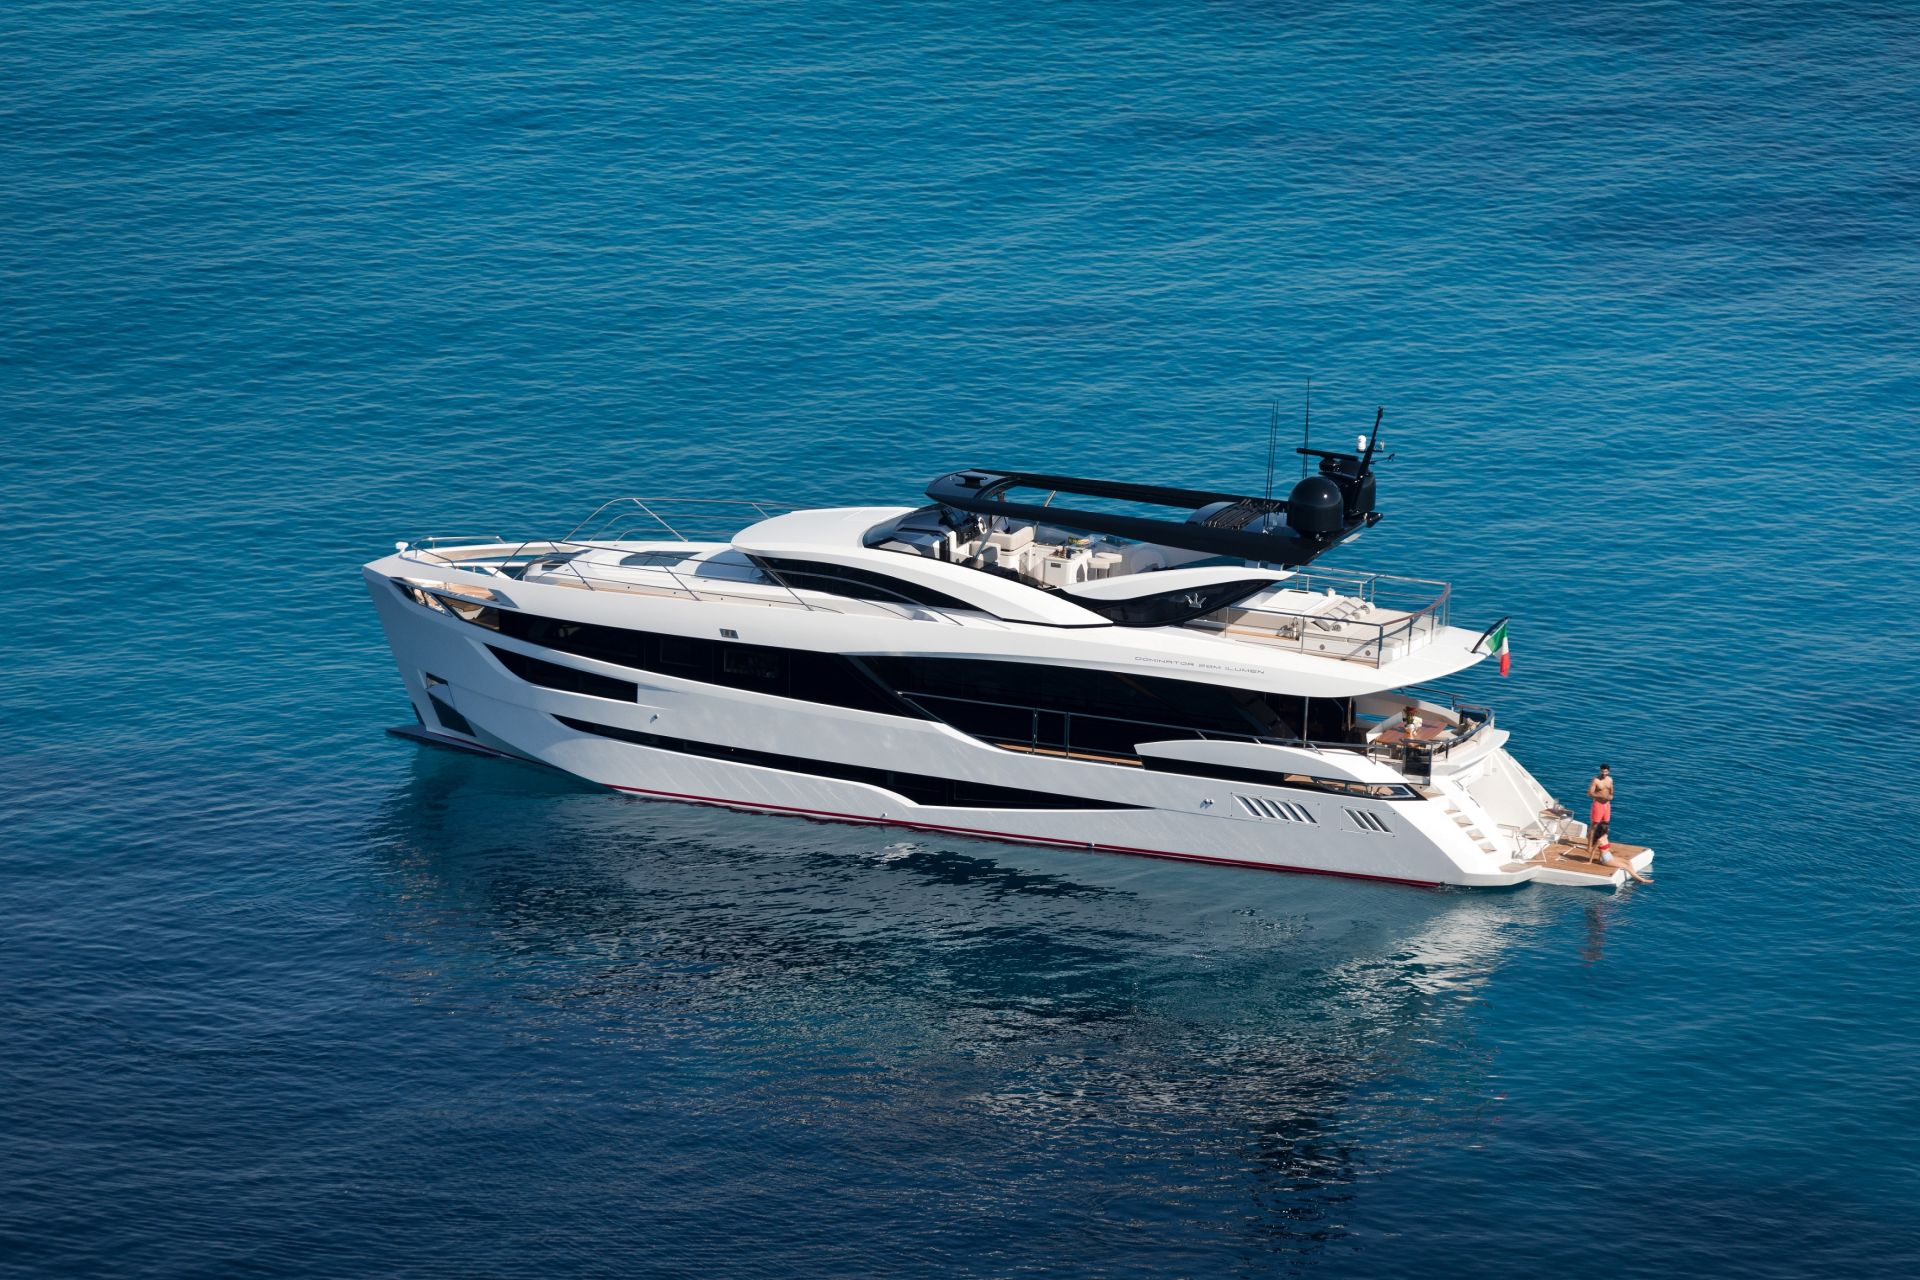 M/Y HANAA yacht for charter overview